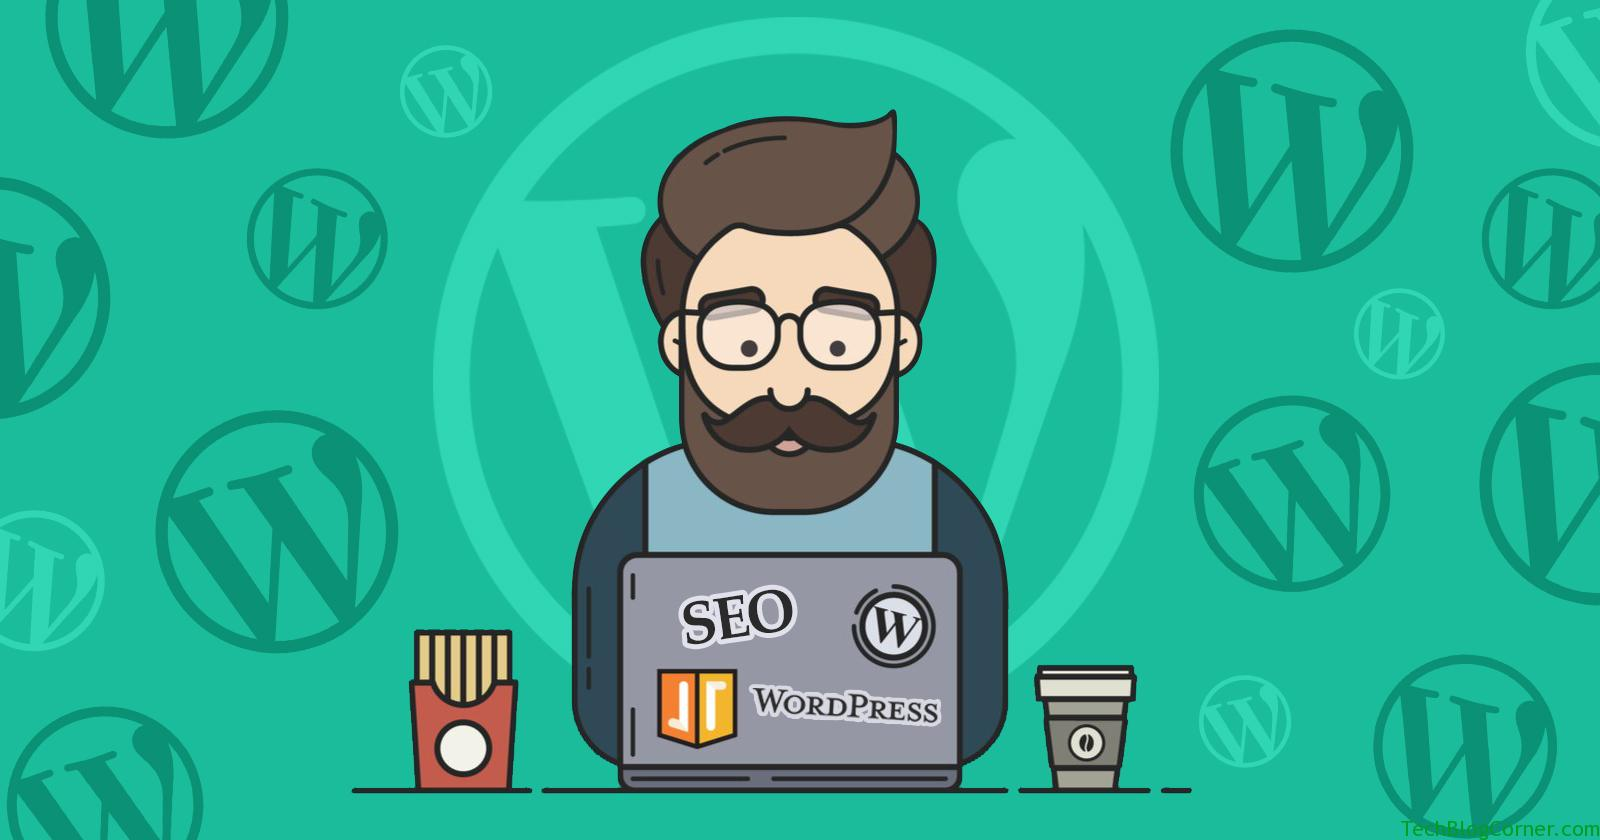 wordpress-seo-best-cms-techblogcorner